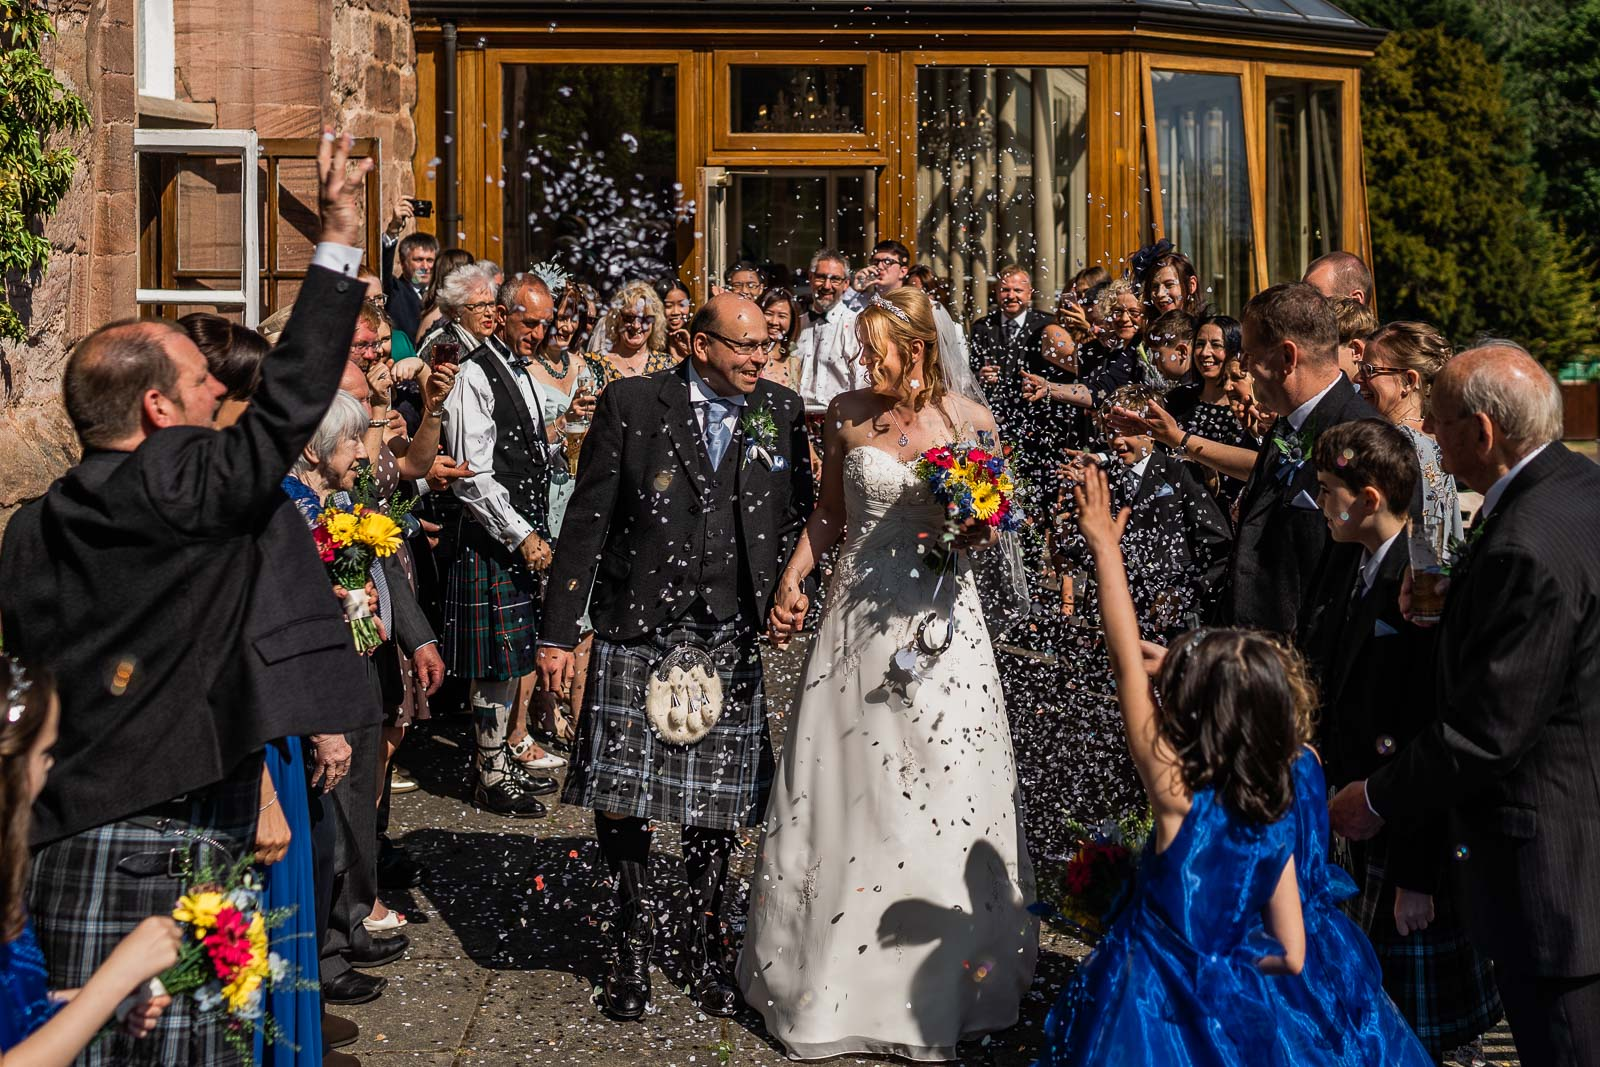 dalhousie_castle_wedding_edinburgh_dearlyphotography (171 of 371).jpg